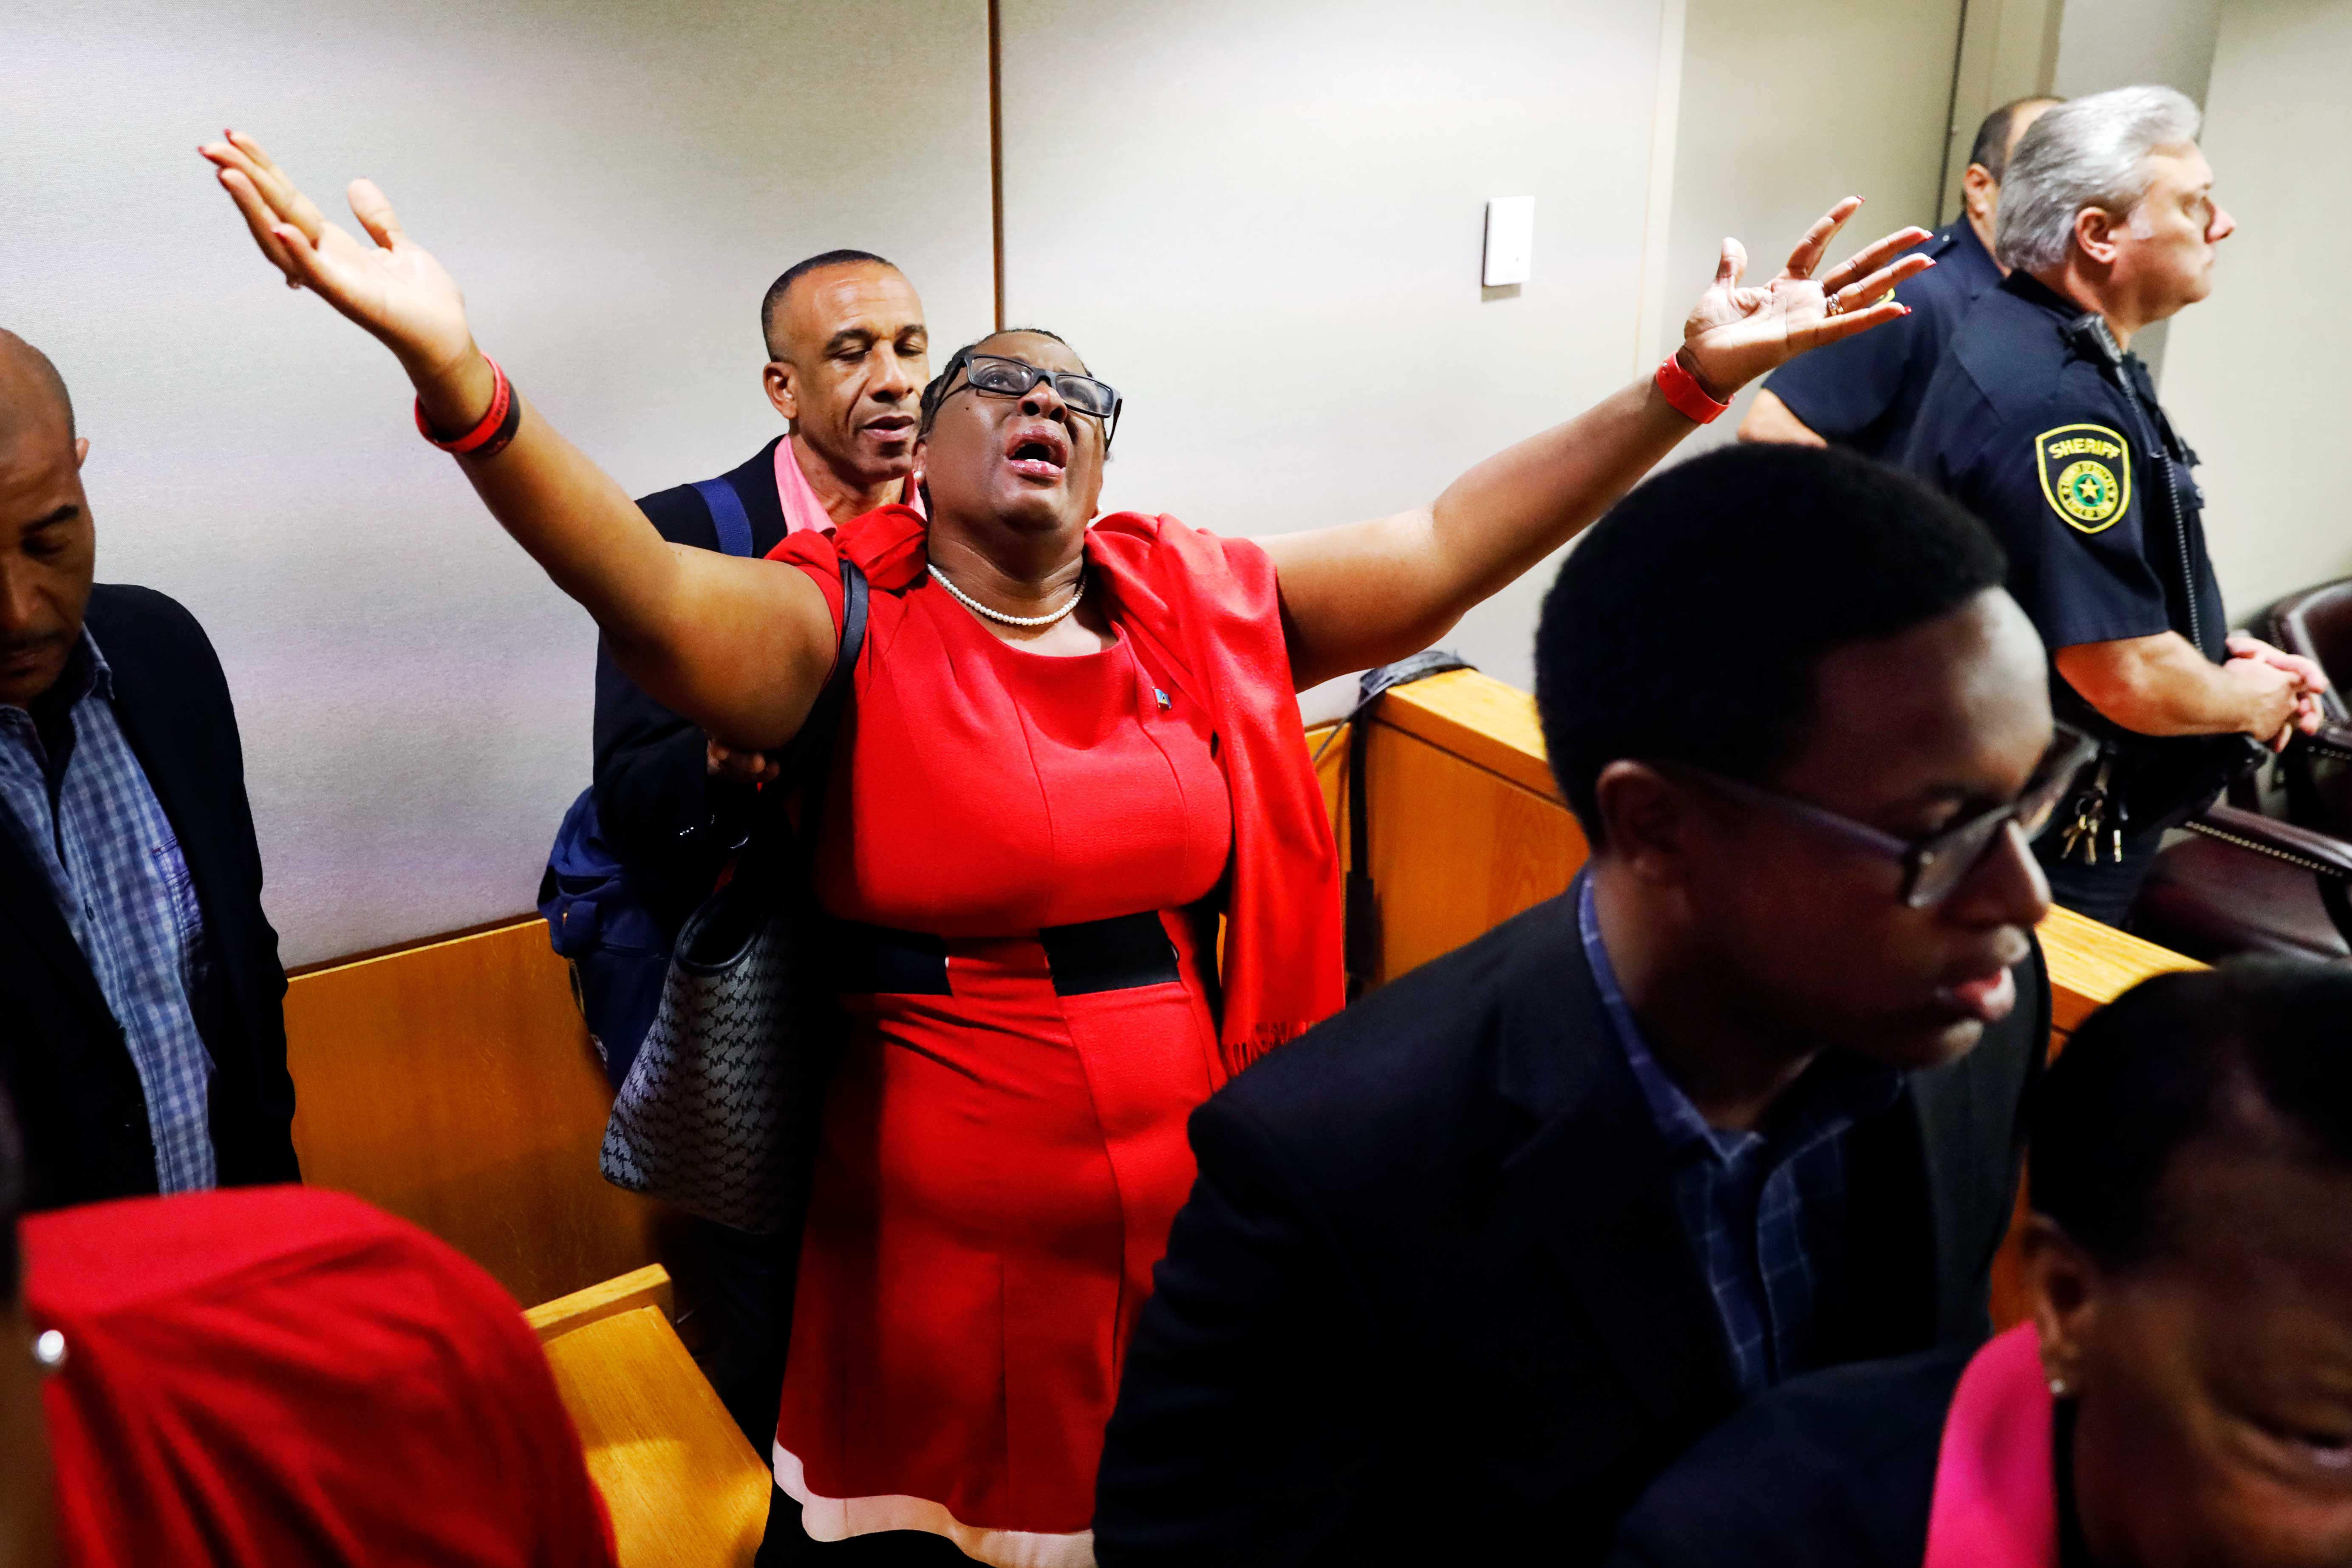 A woman wearing all red throws her hands in the air.